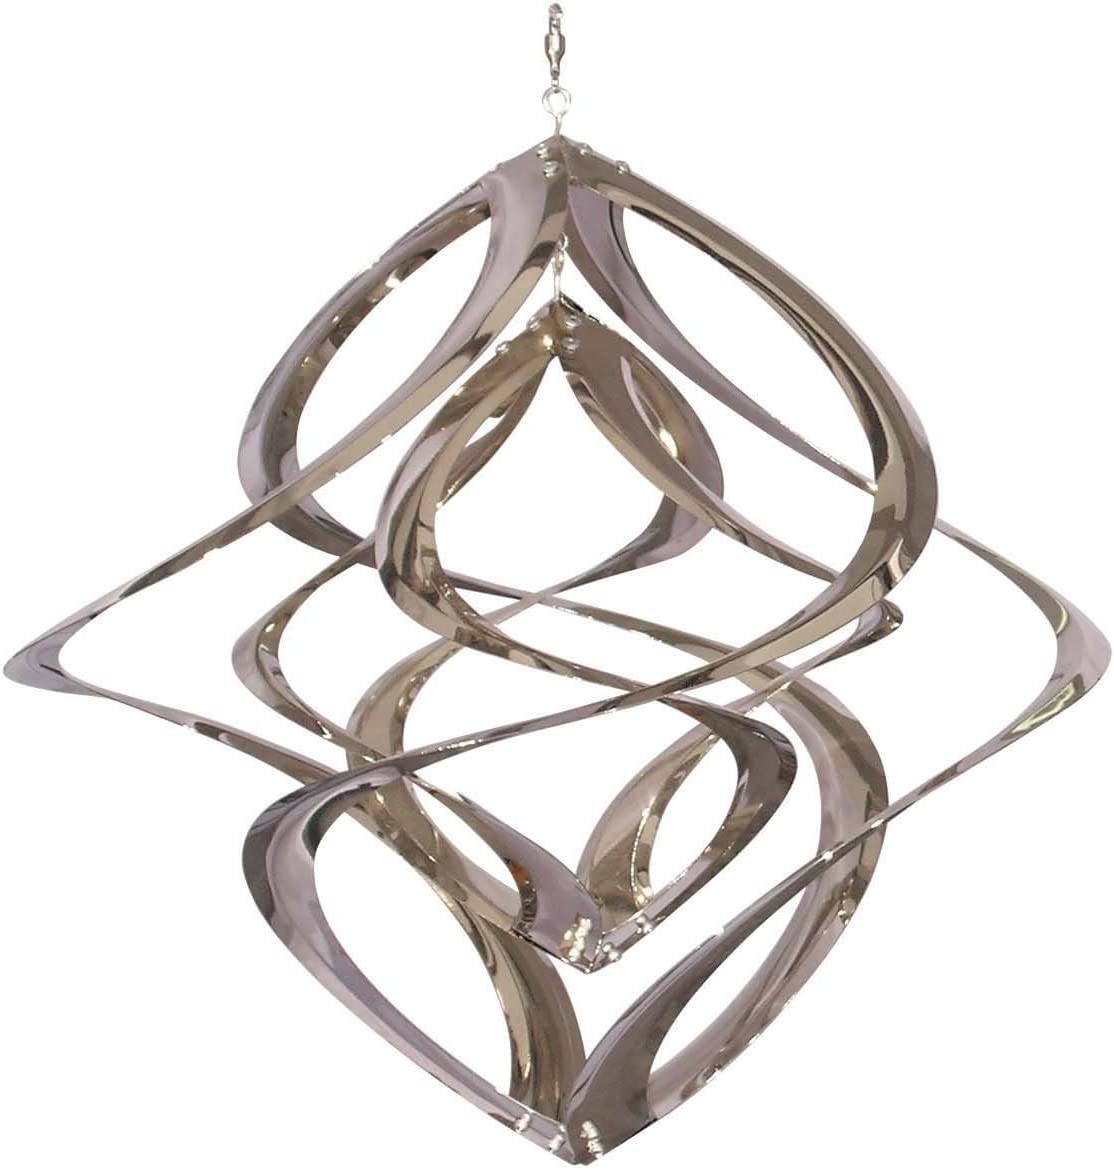 Red Carpet Studios Ranking TOP5 Cosmix Chrome Small Wind Sculpture Double In a popularity